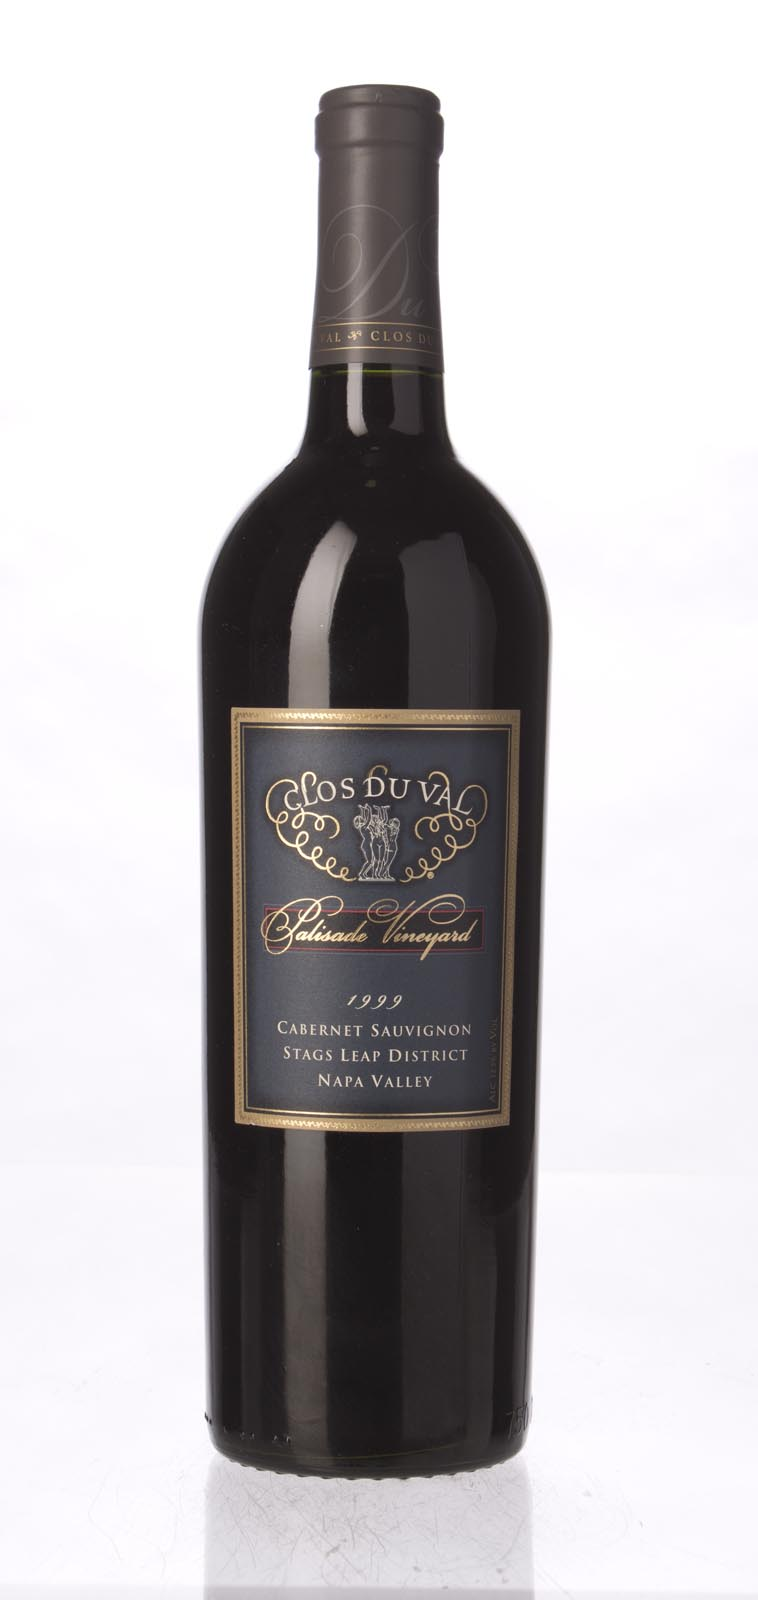 Clos du Val Cabernet Sauvignon Palisades Vineyard 1999, 750ml () from The BPW - Merchants of rare and fine wines.